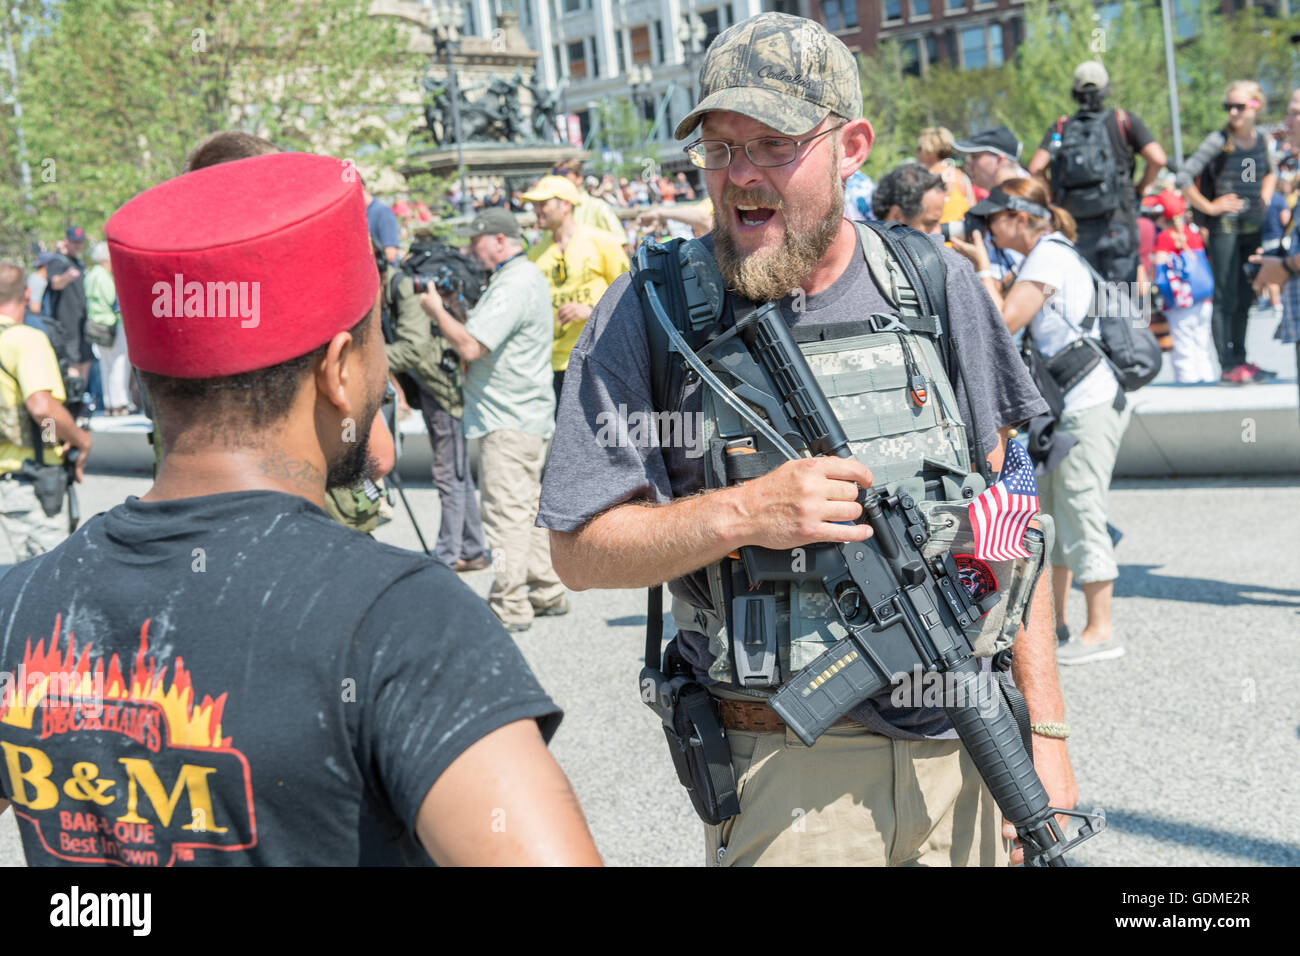 Cleveland, Ohio, USA. 19th July, 2016. Members of an Ohio militia group protest by openly carrying military style - Stock Image